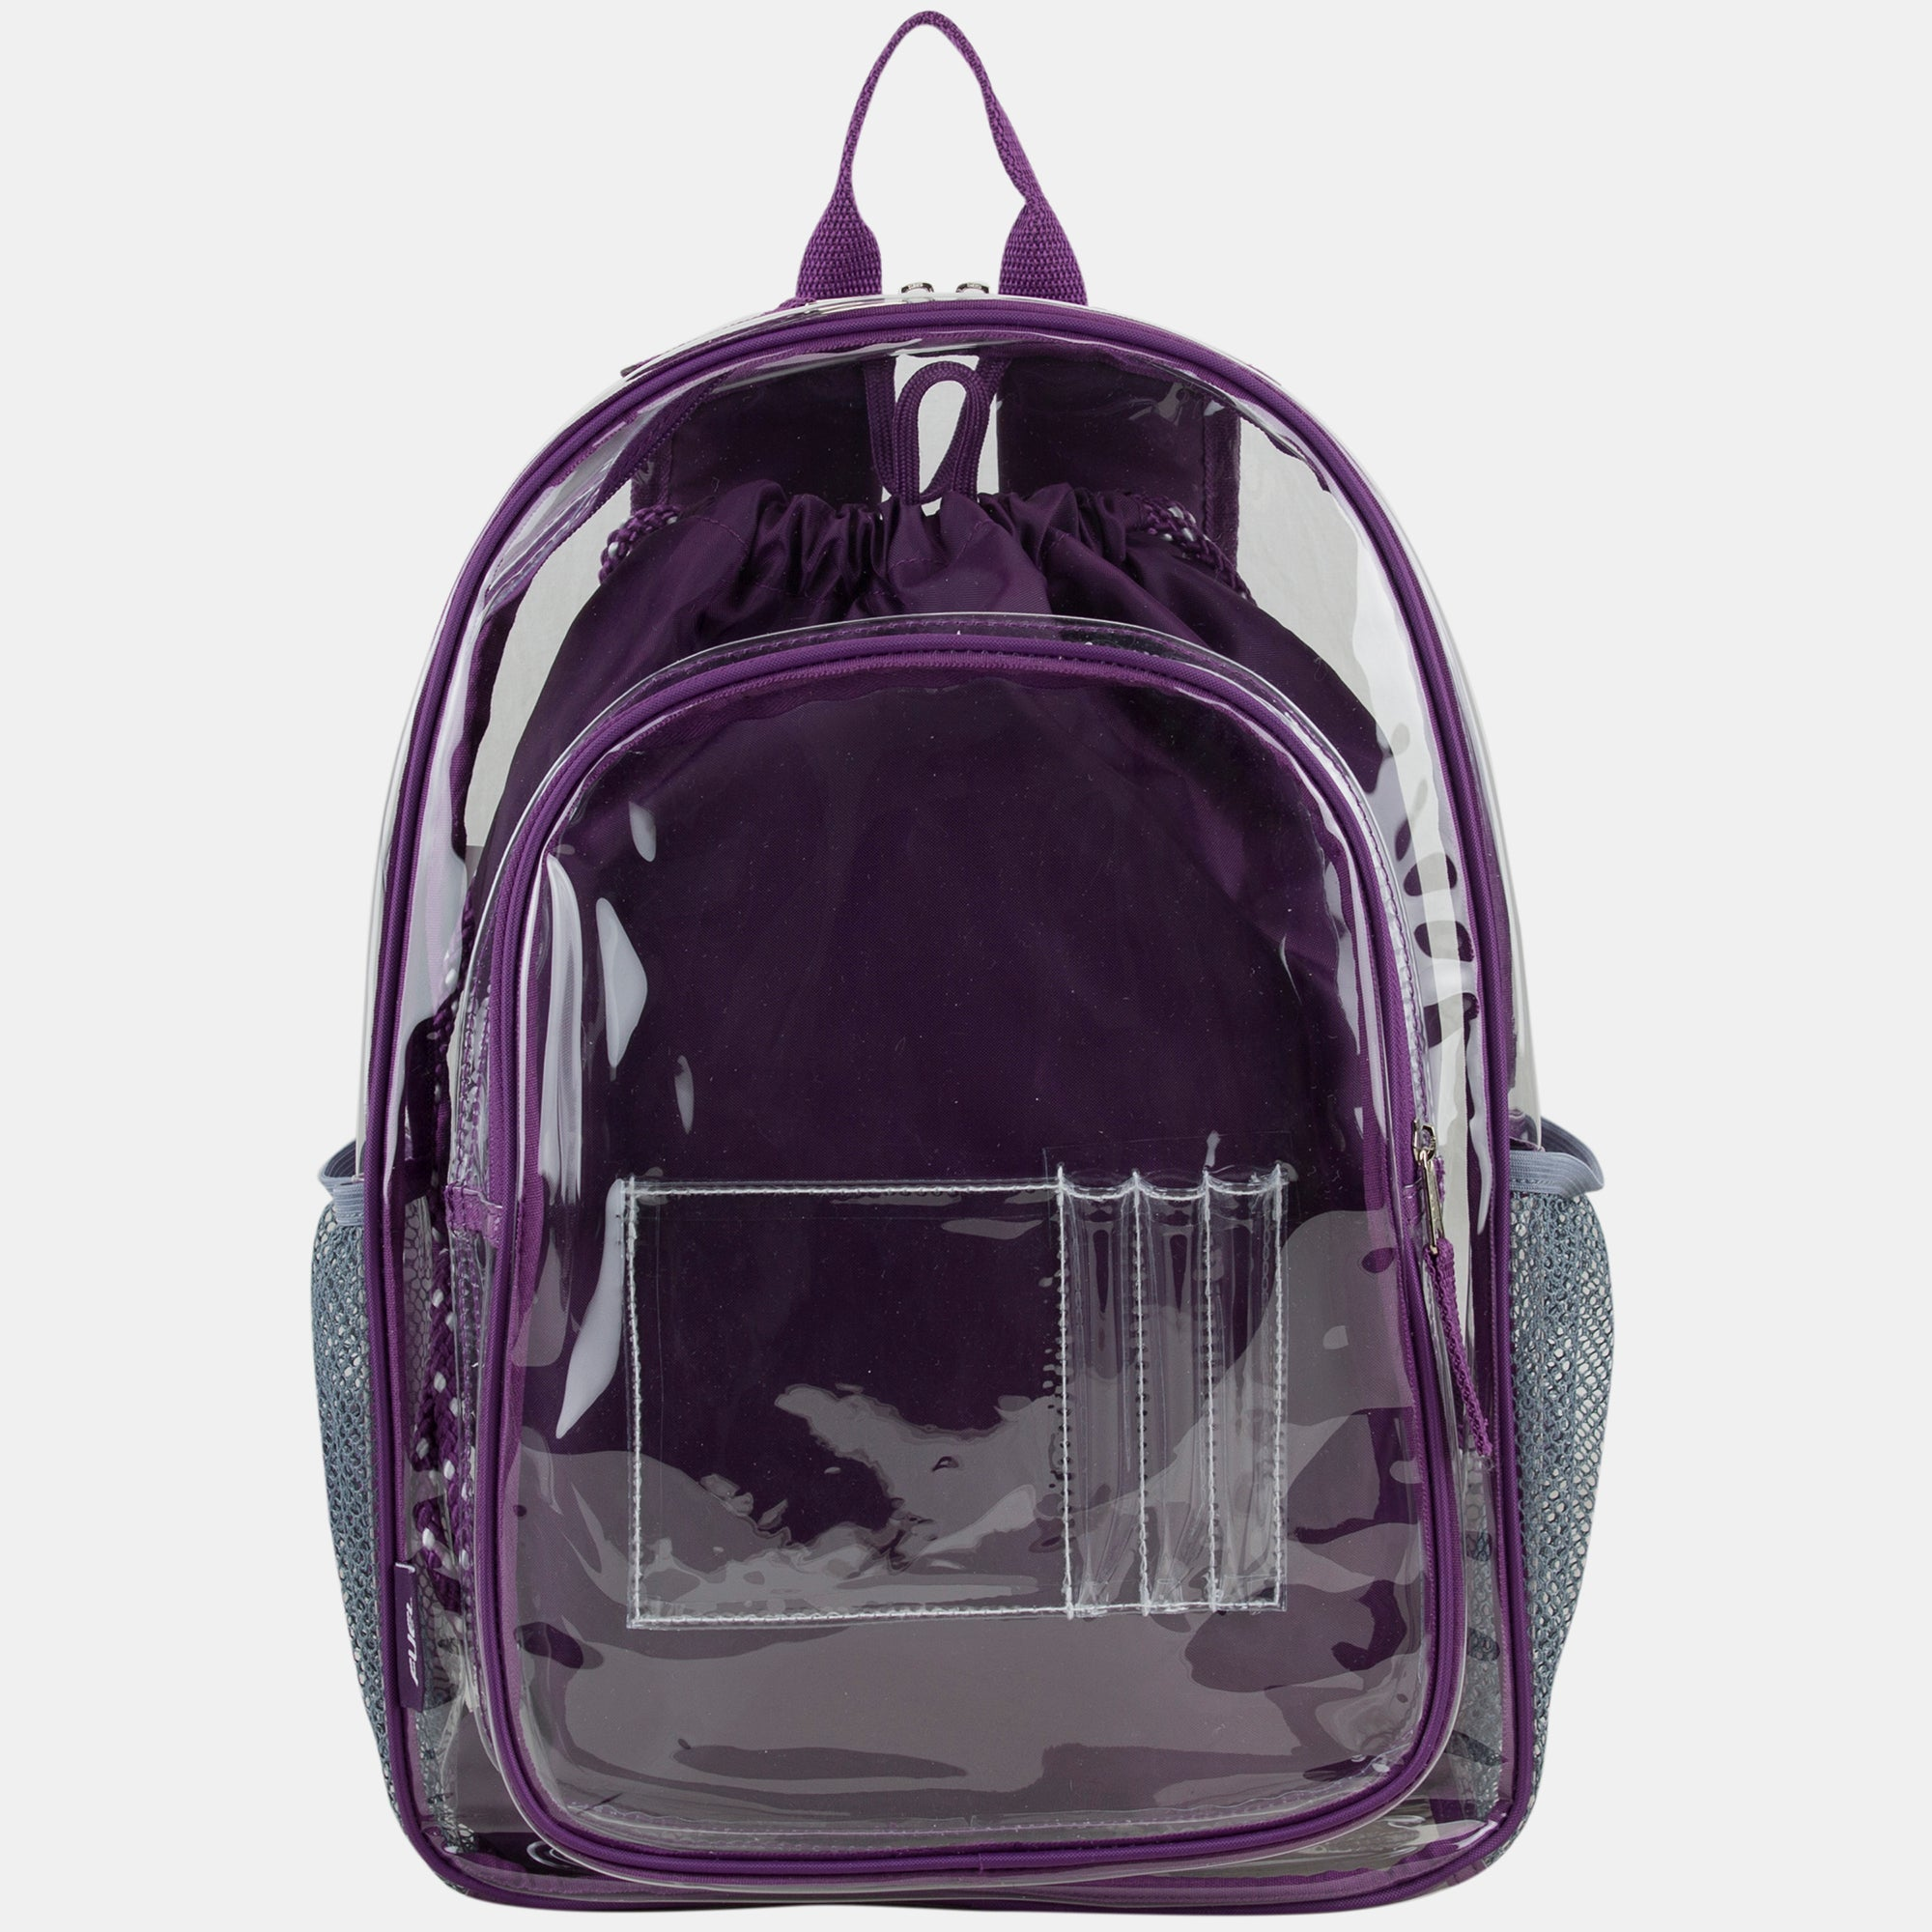 FUEL Clear Backpack and Cinch Sling Bundle Set, Transparent